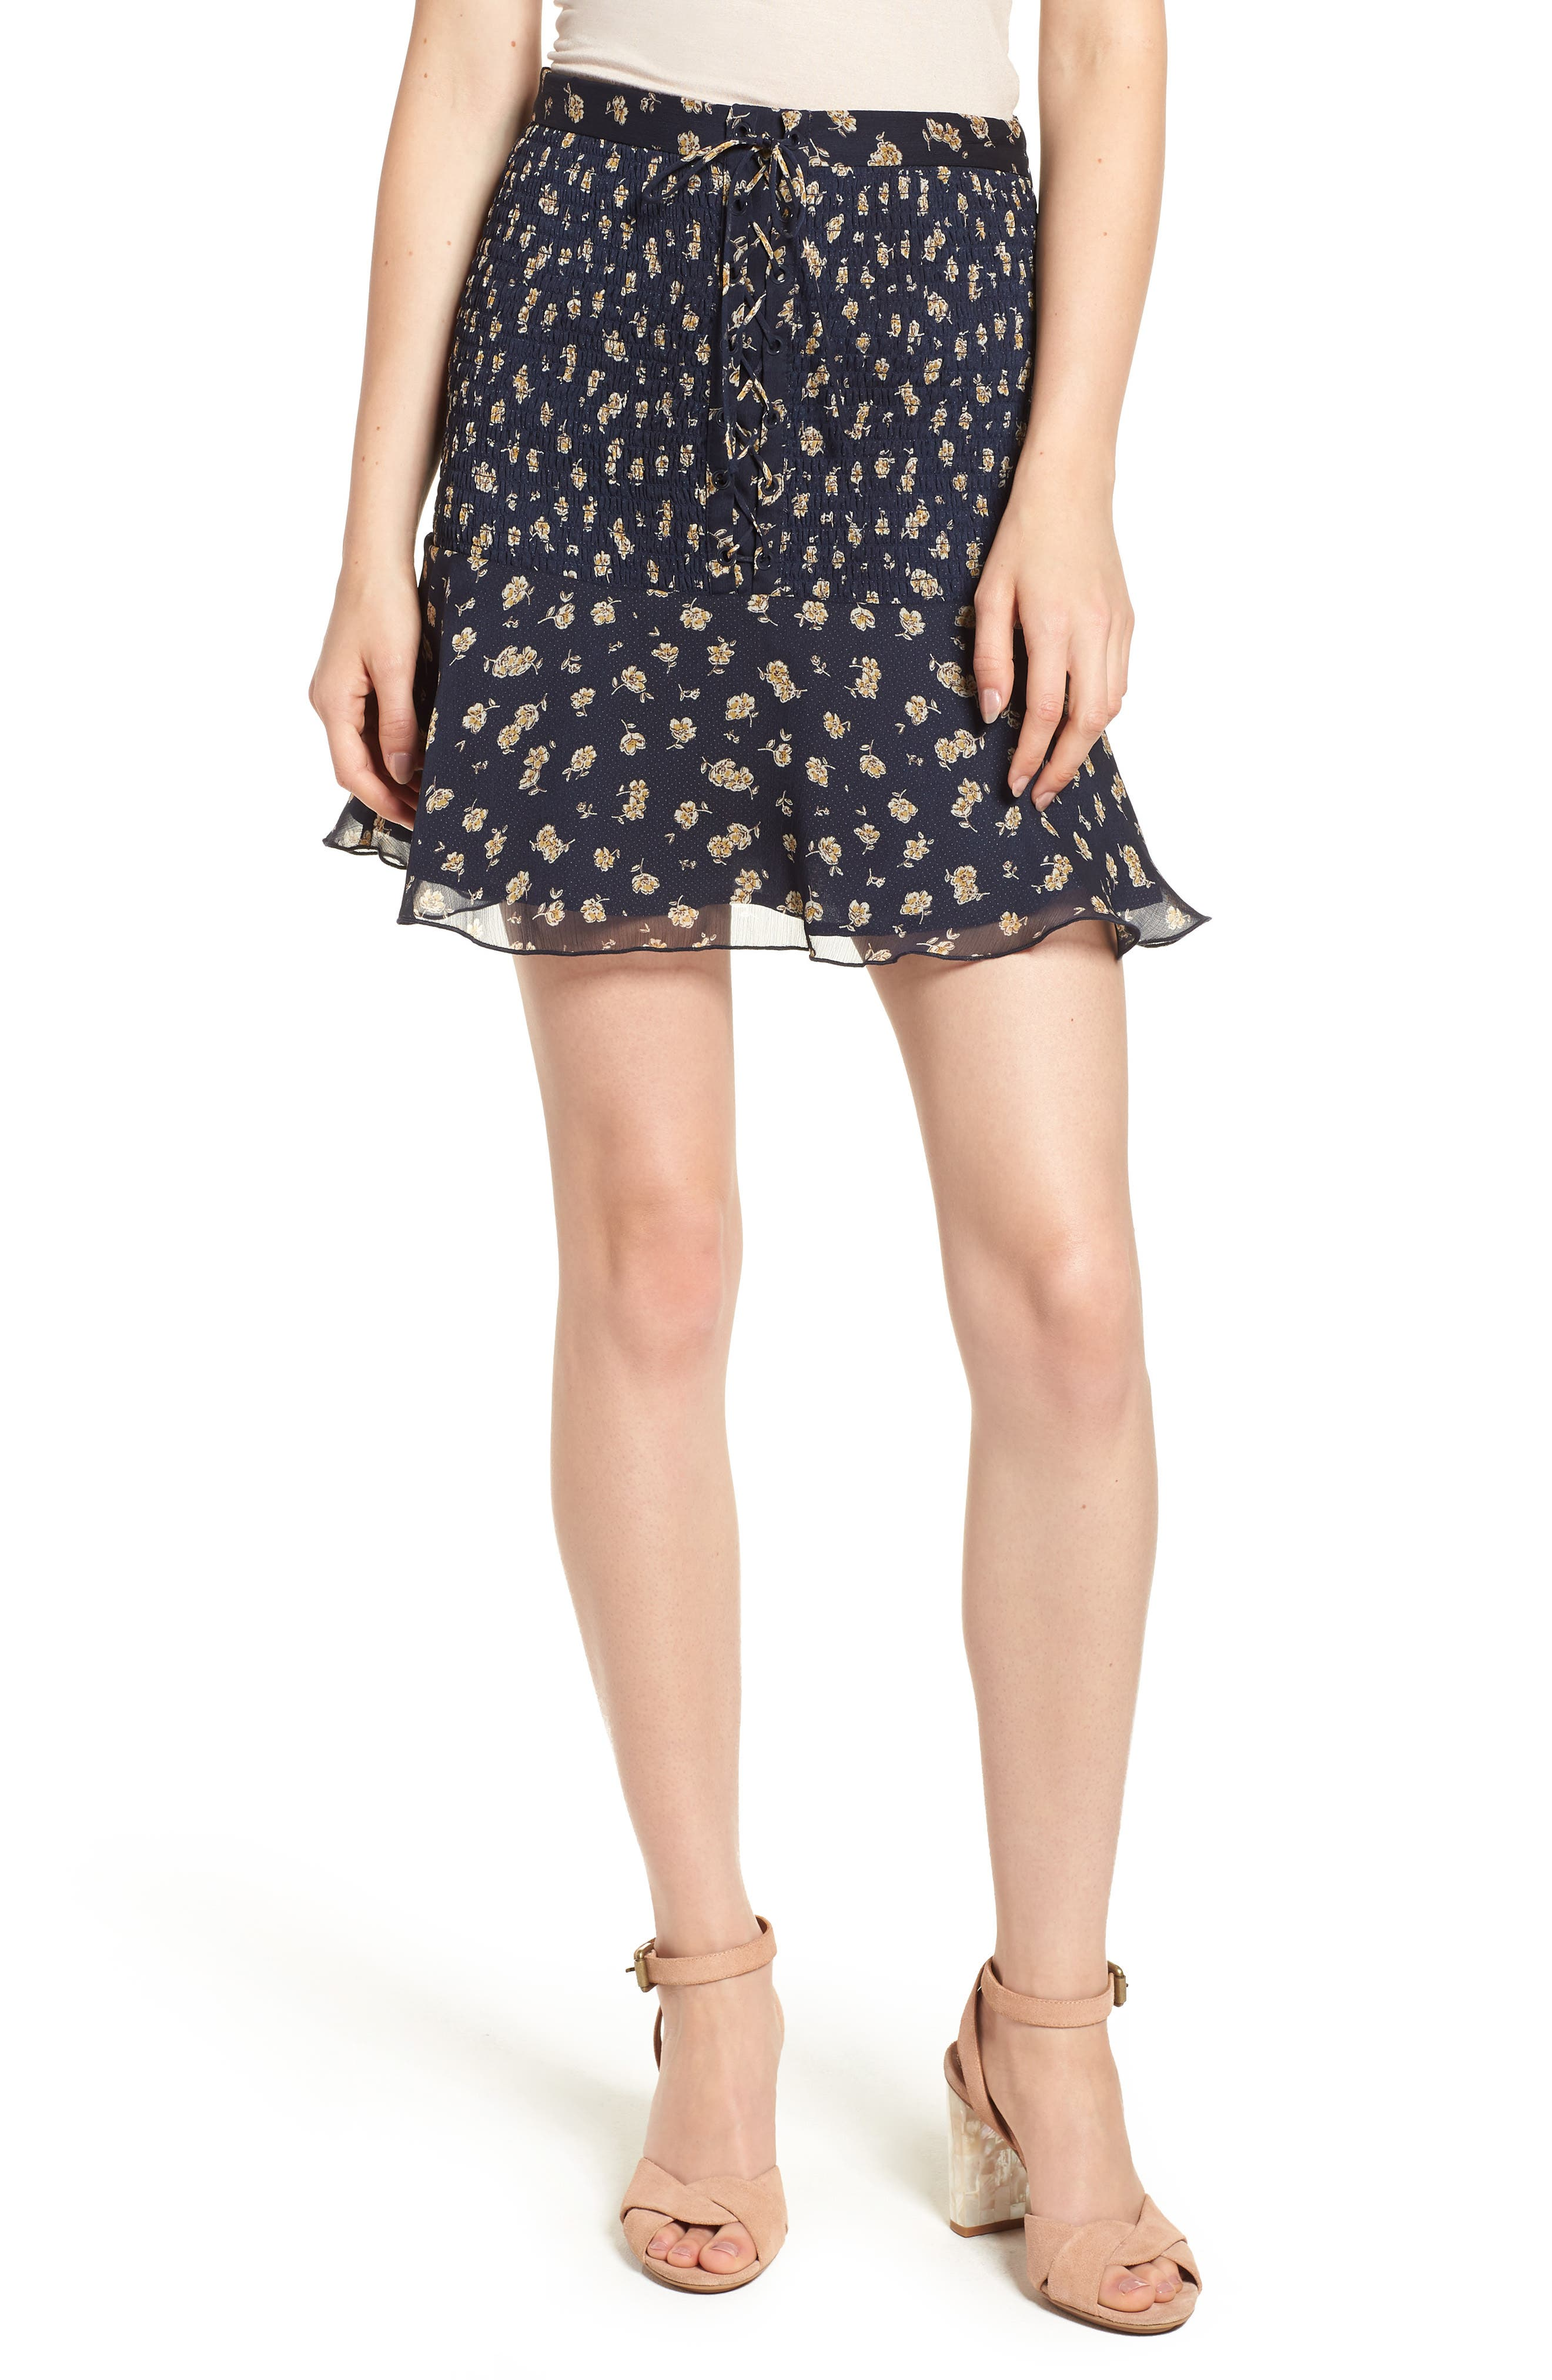 THE EAST ORDER NINA LACE-UP FLARED SKIRT